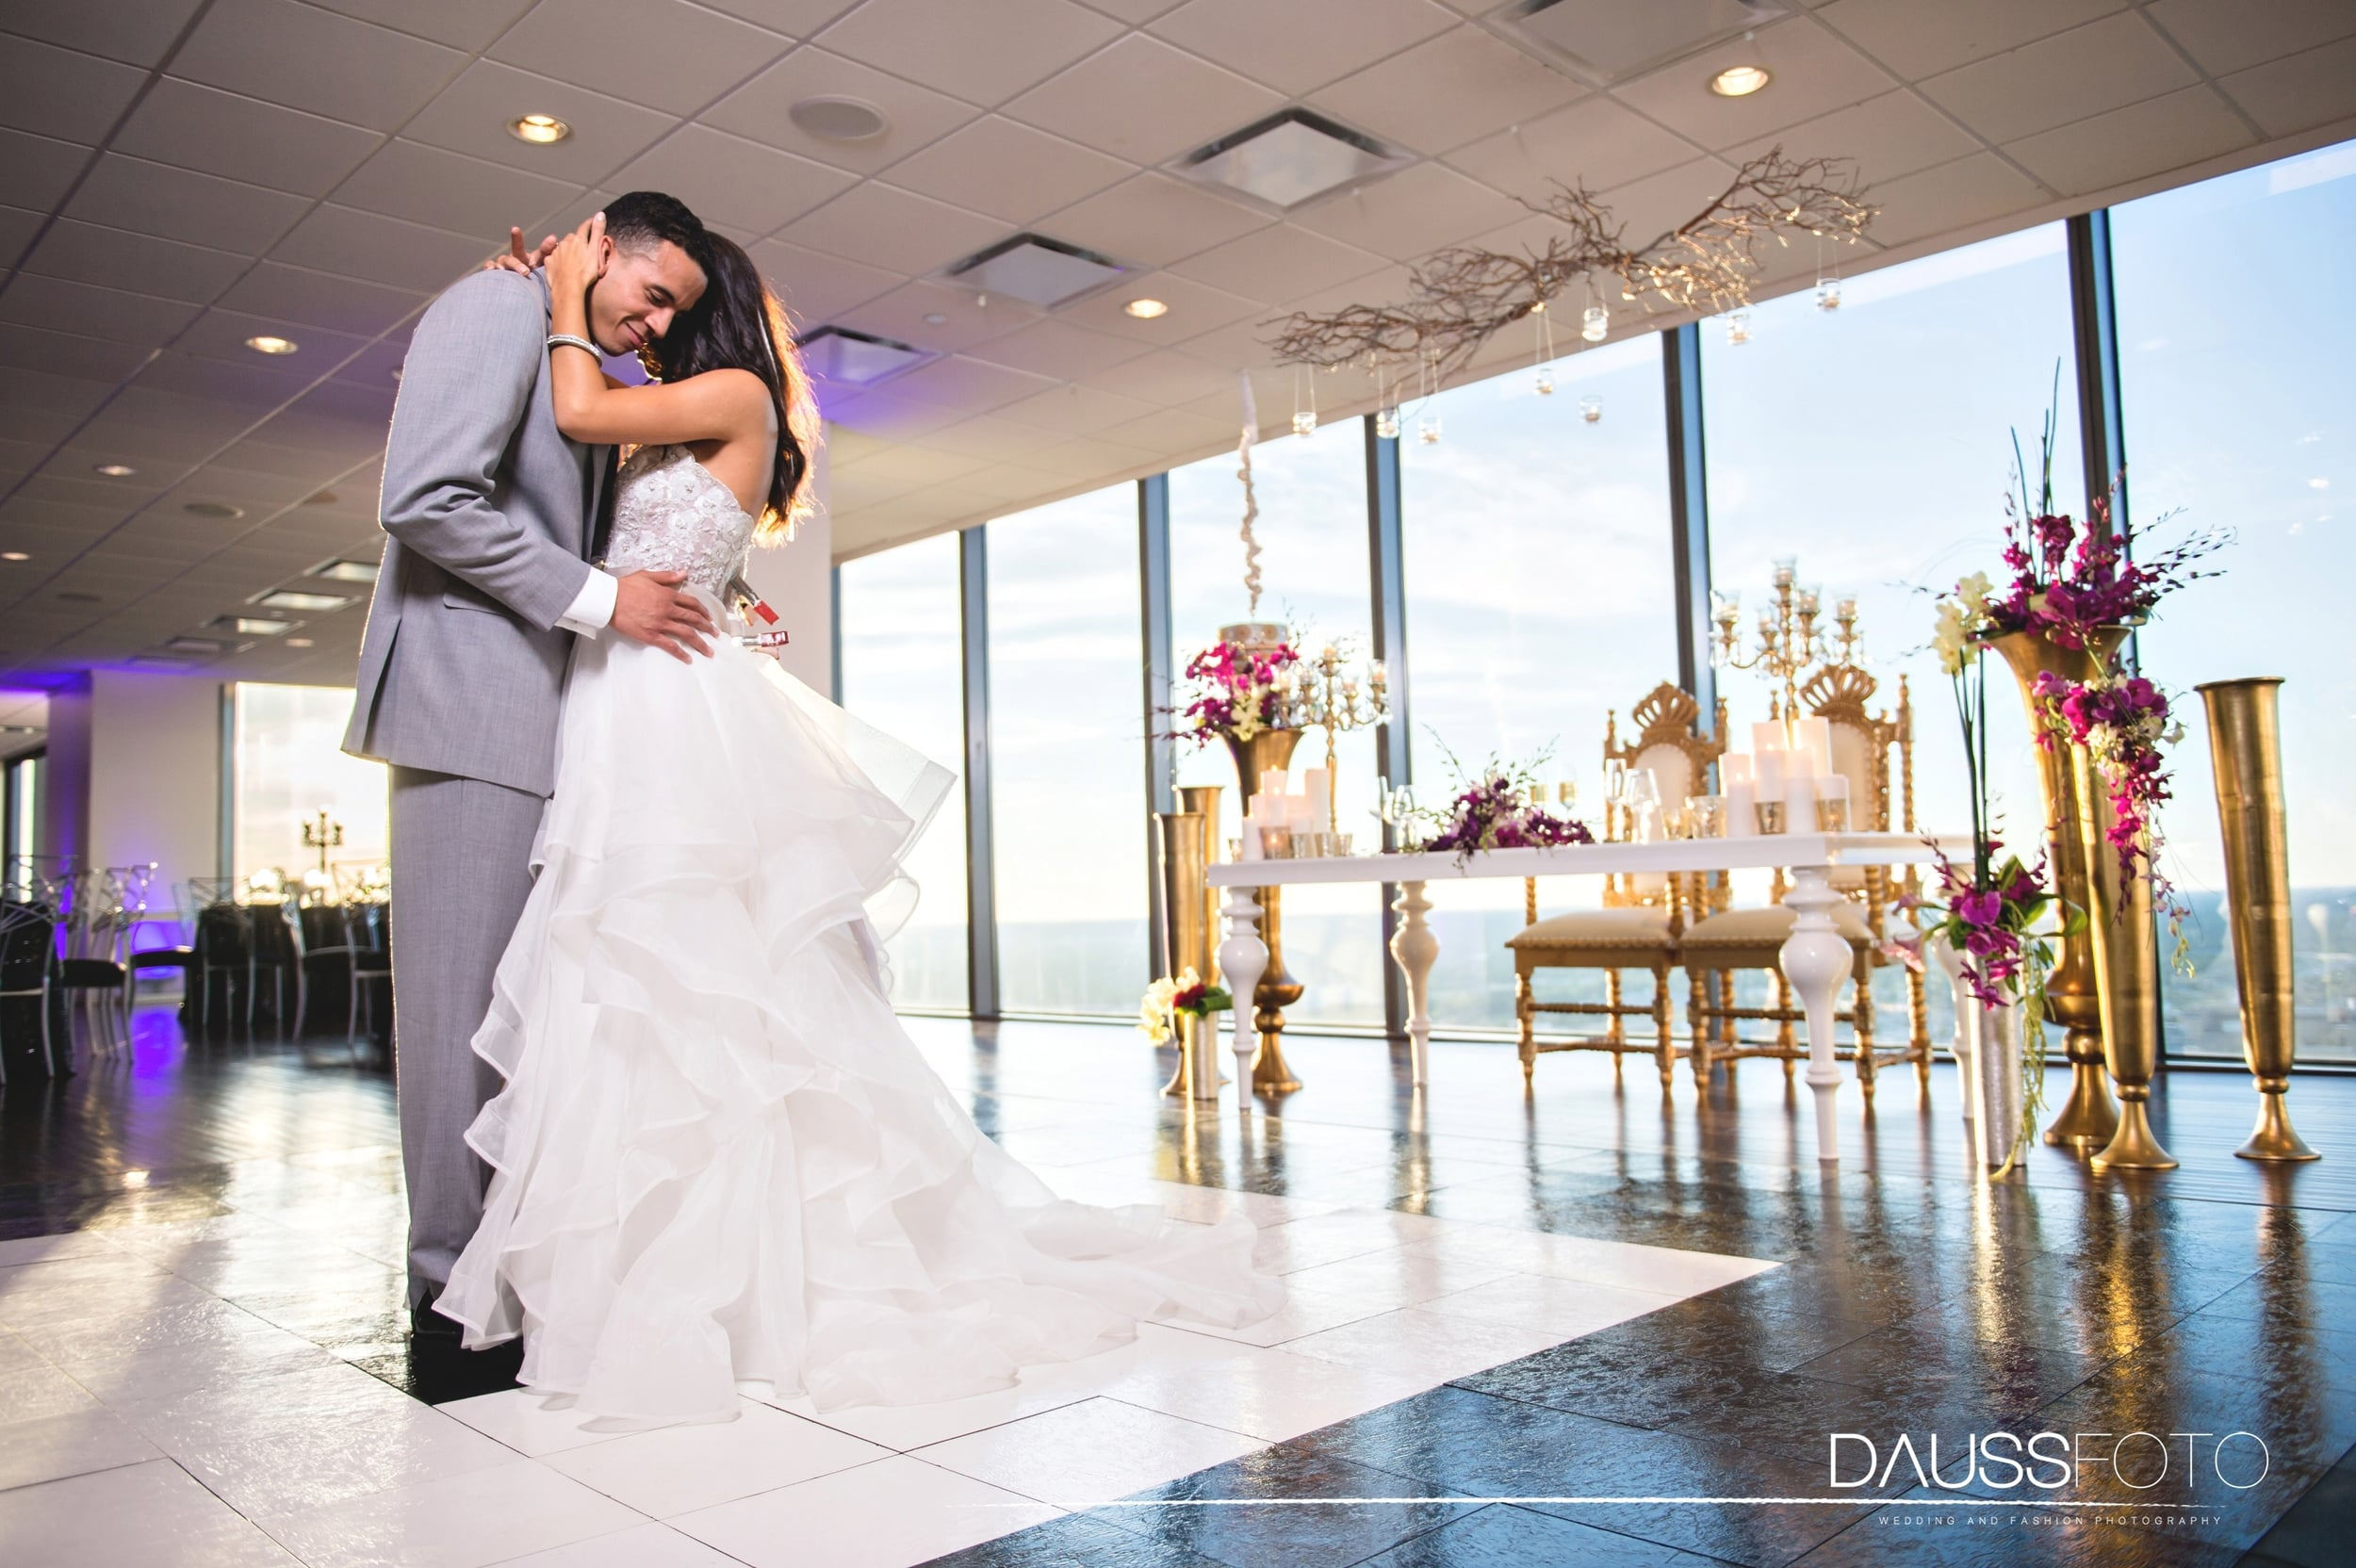 DaussFOTO_20150721_117_Indiana Wedding Photographer.jpg